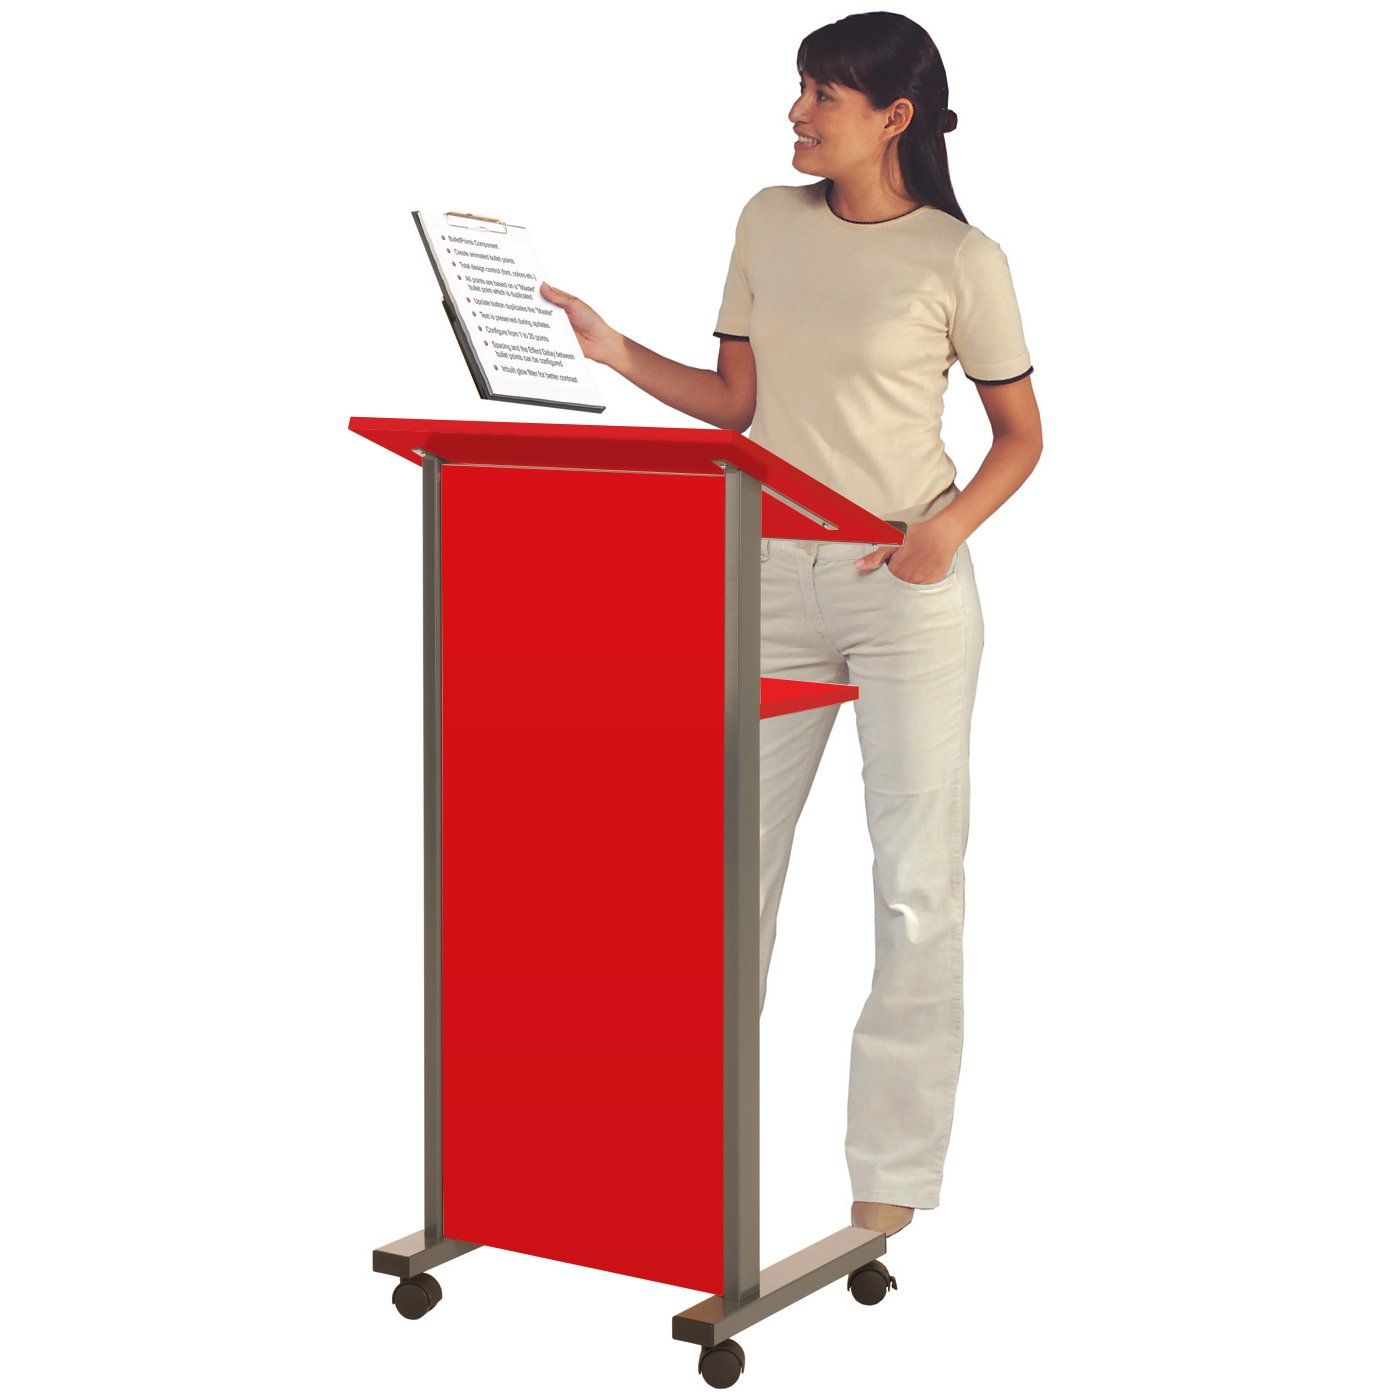 Wonderwall Mobile Coloured Lectern - Standing Desk - choice of 3 colours, incl. (Blue) Wonderwall Products Ltd